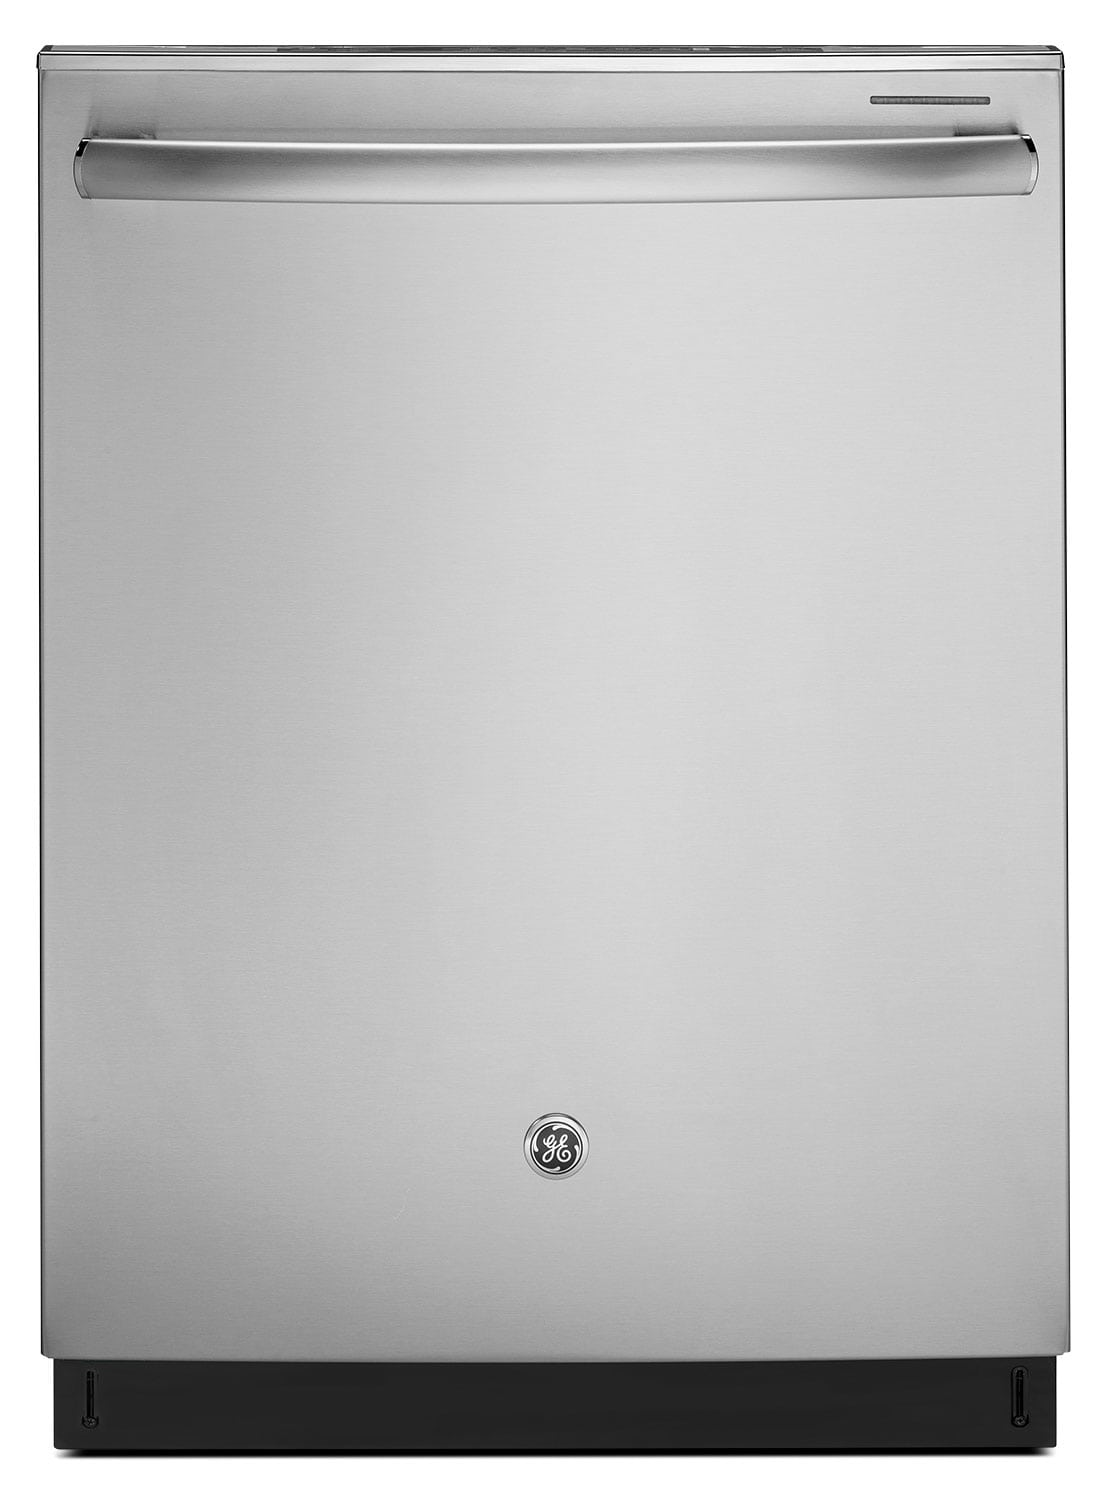 Clean-Up - GE Tall Tub Built-In Dishwasher - Stainless Steel